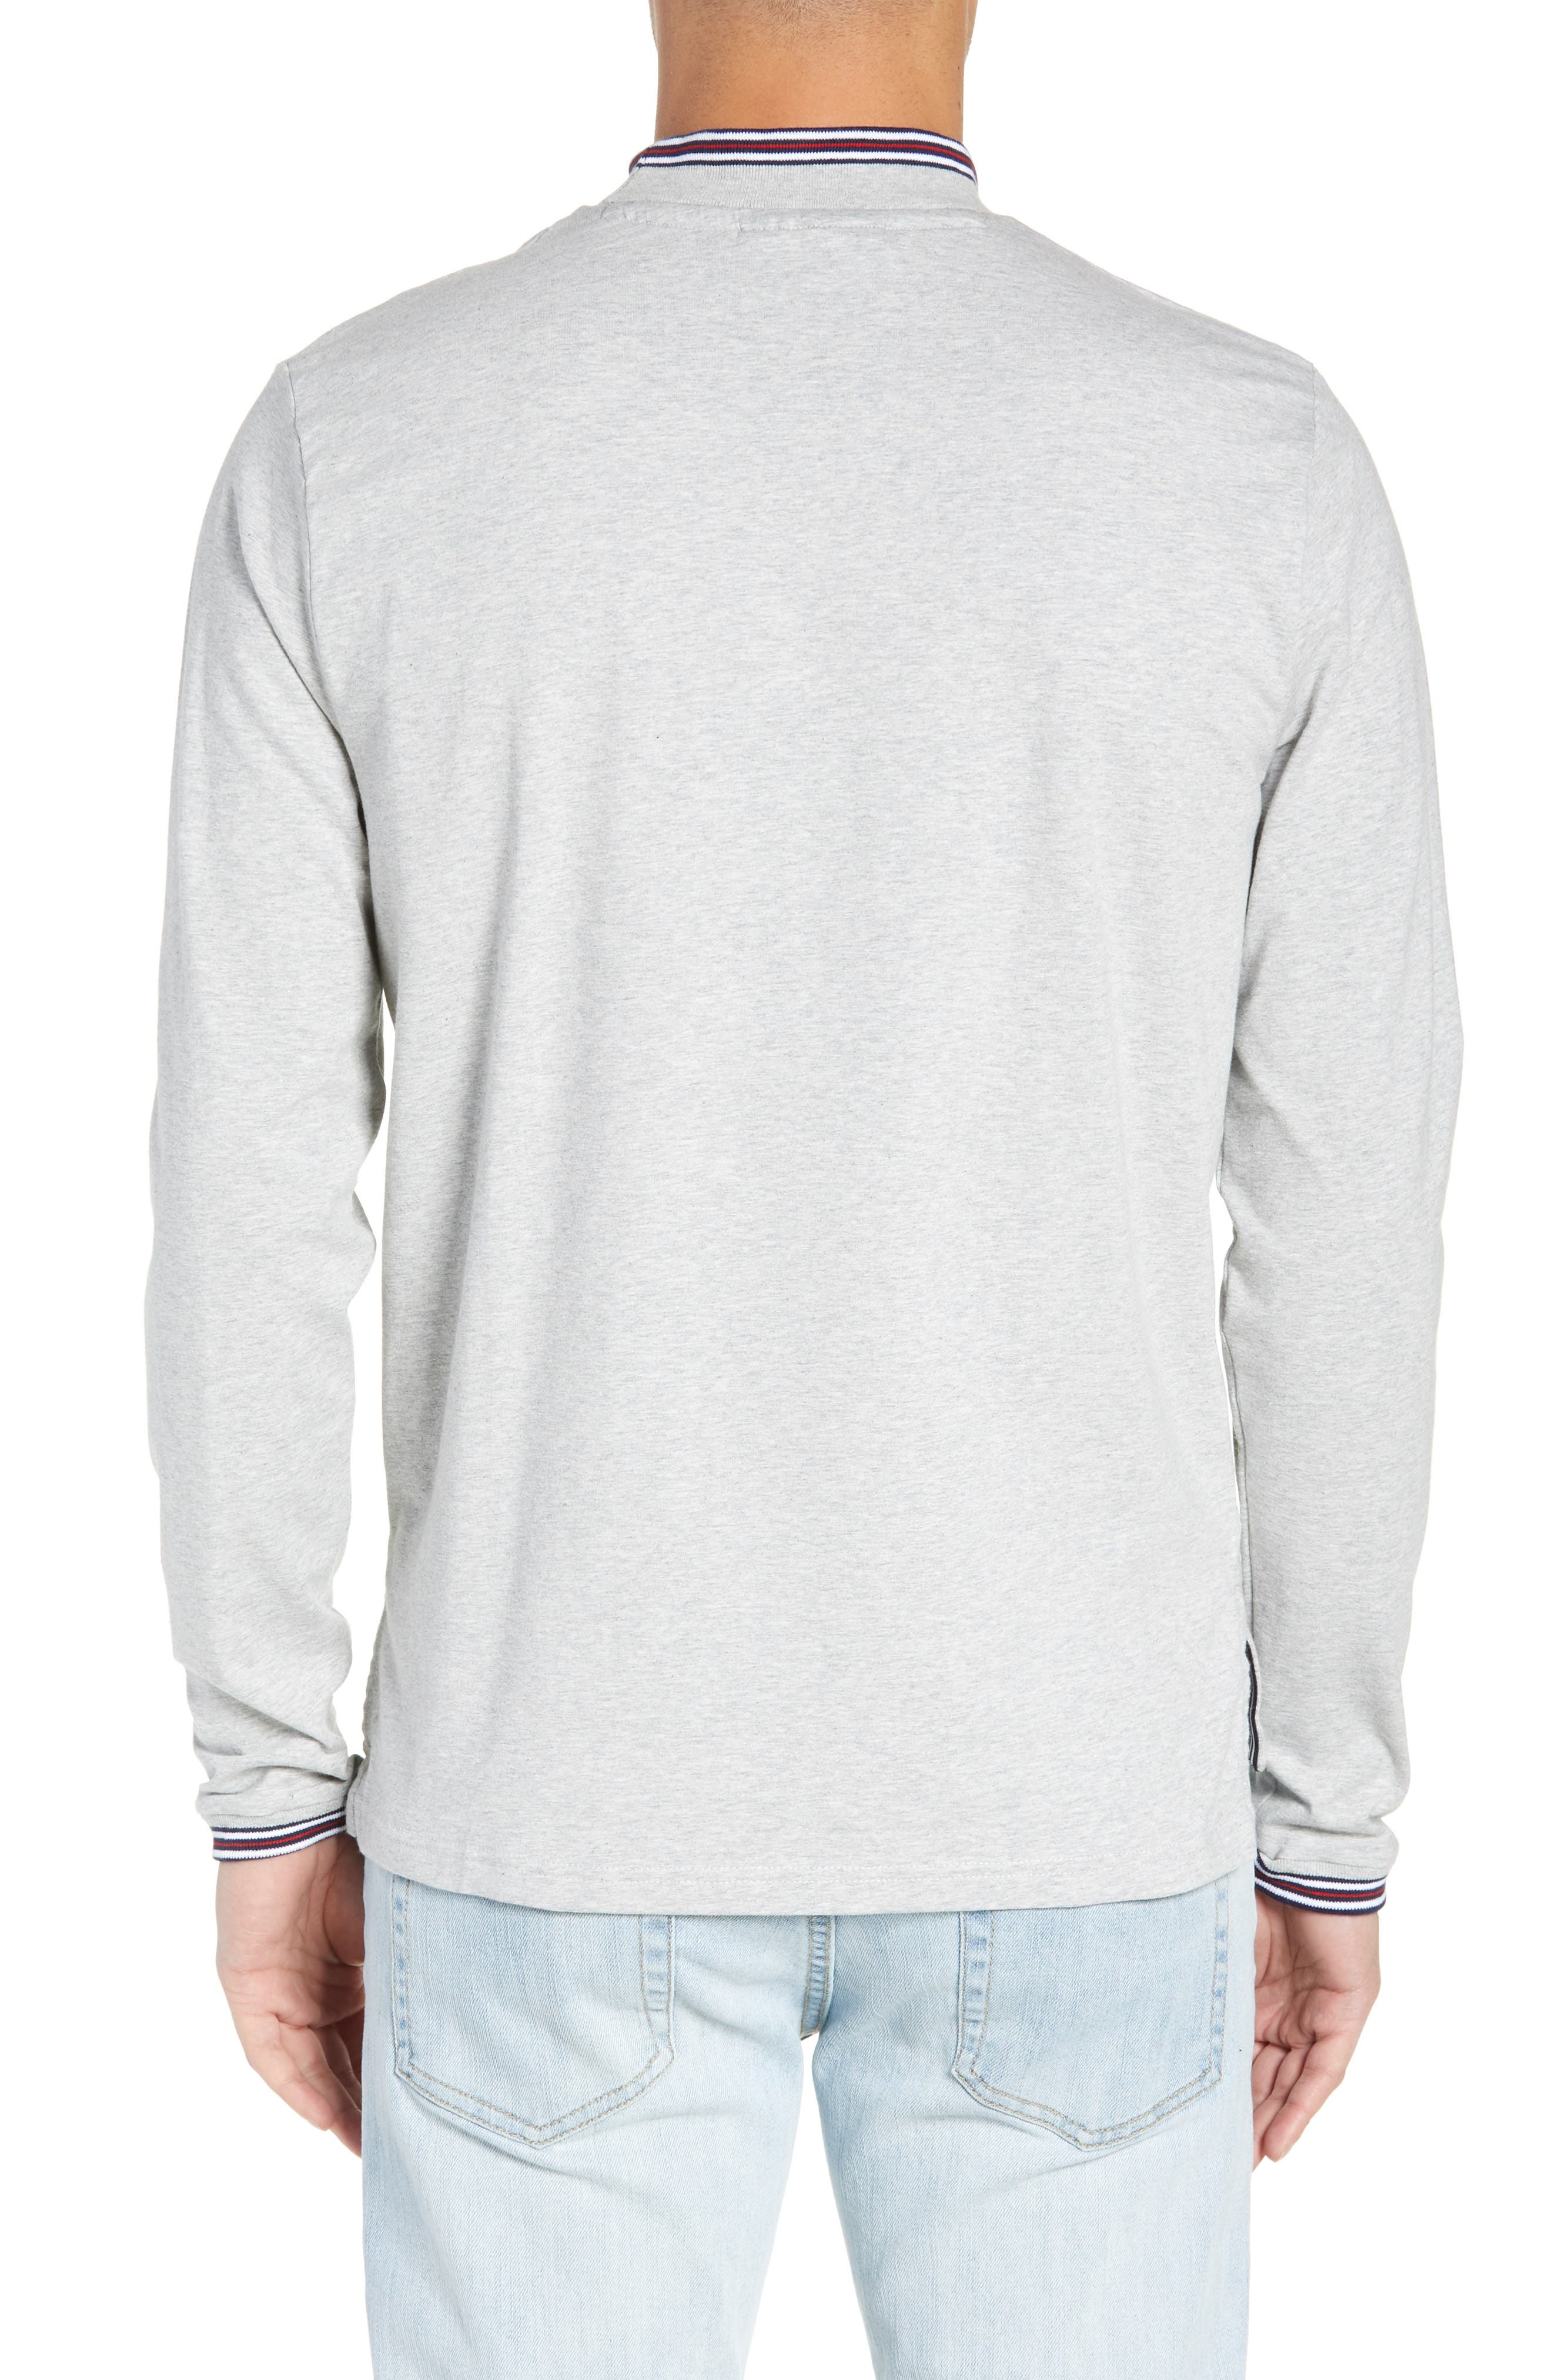 Quentin Mock Neck T-Shirt,                             Alternate thumbnail 2, color,                             LIGHT GREY